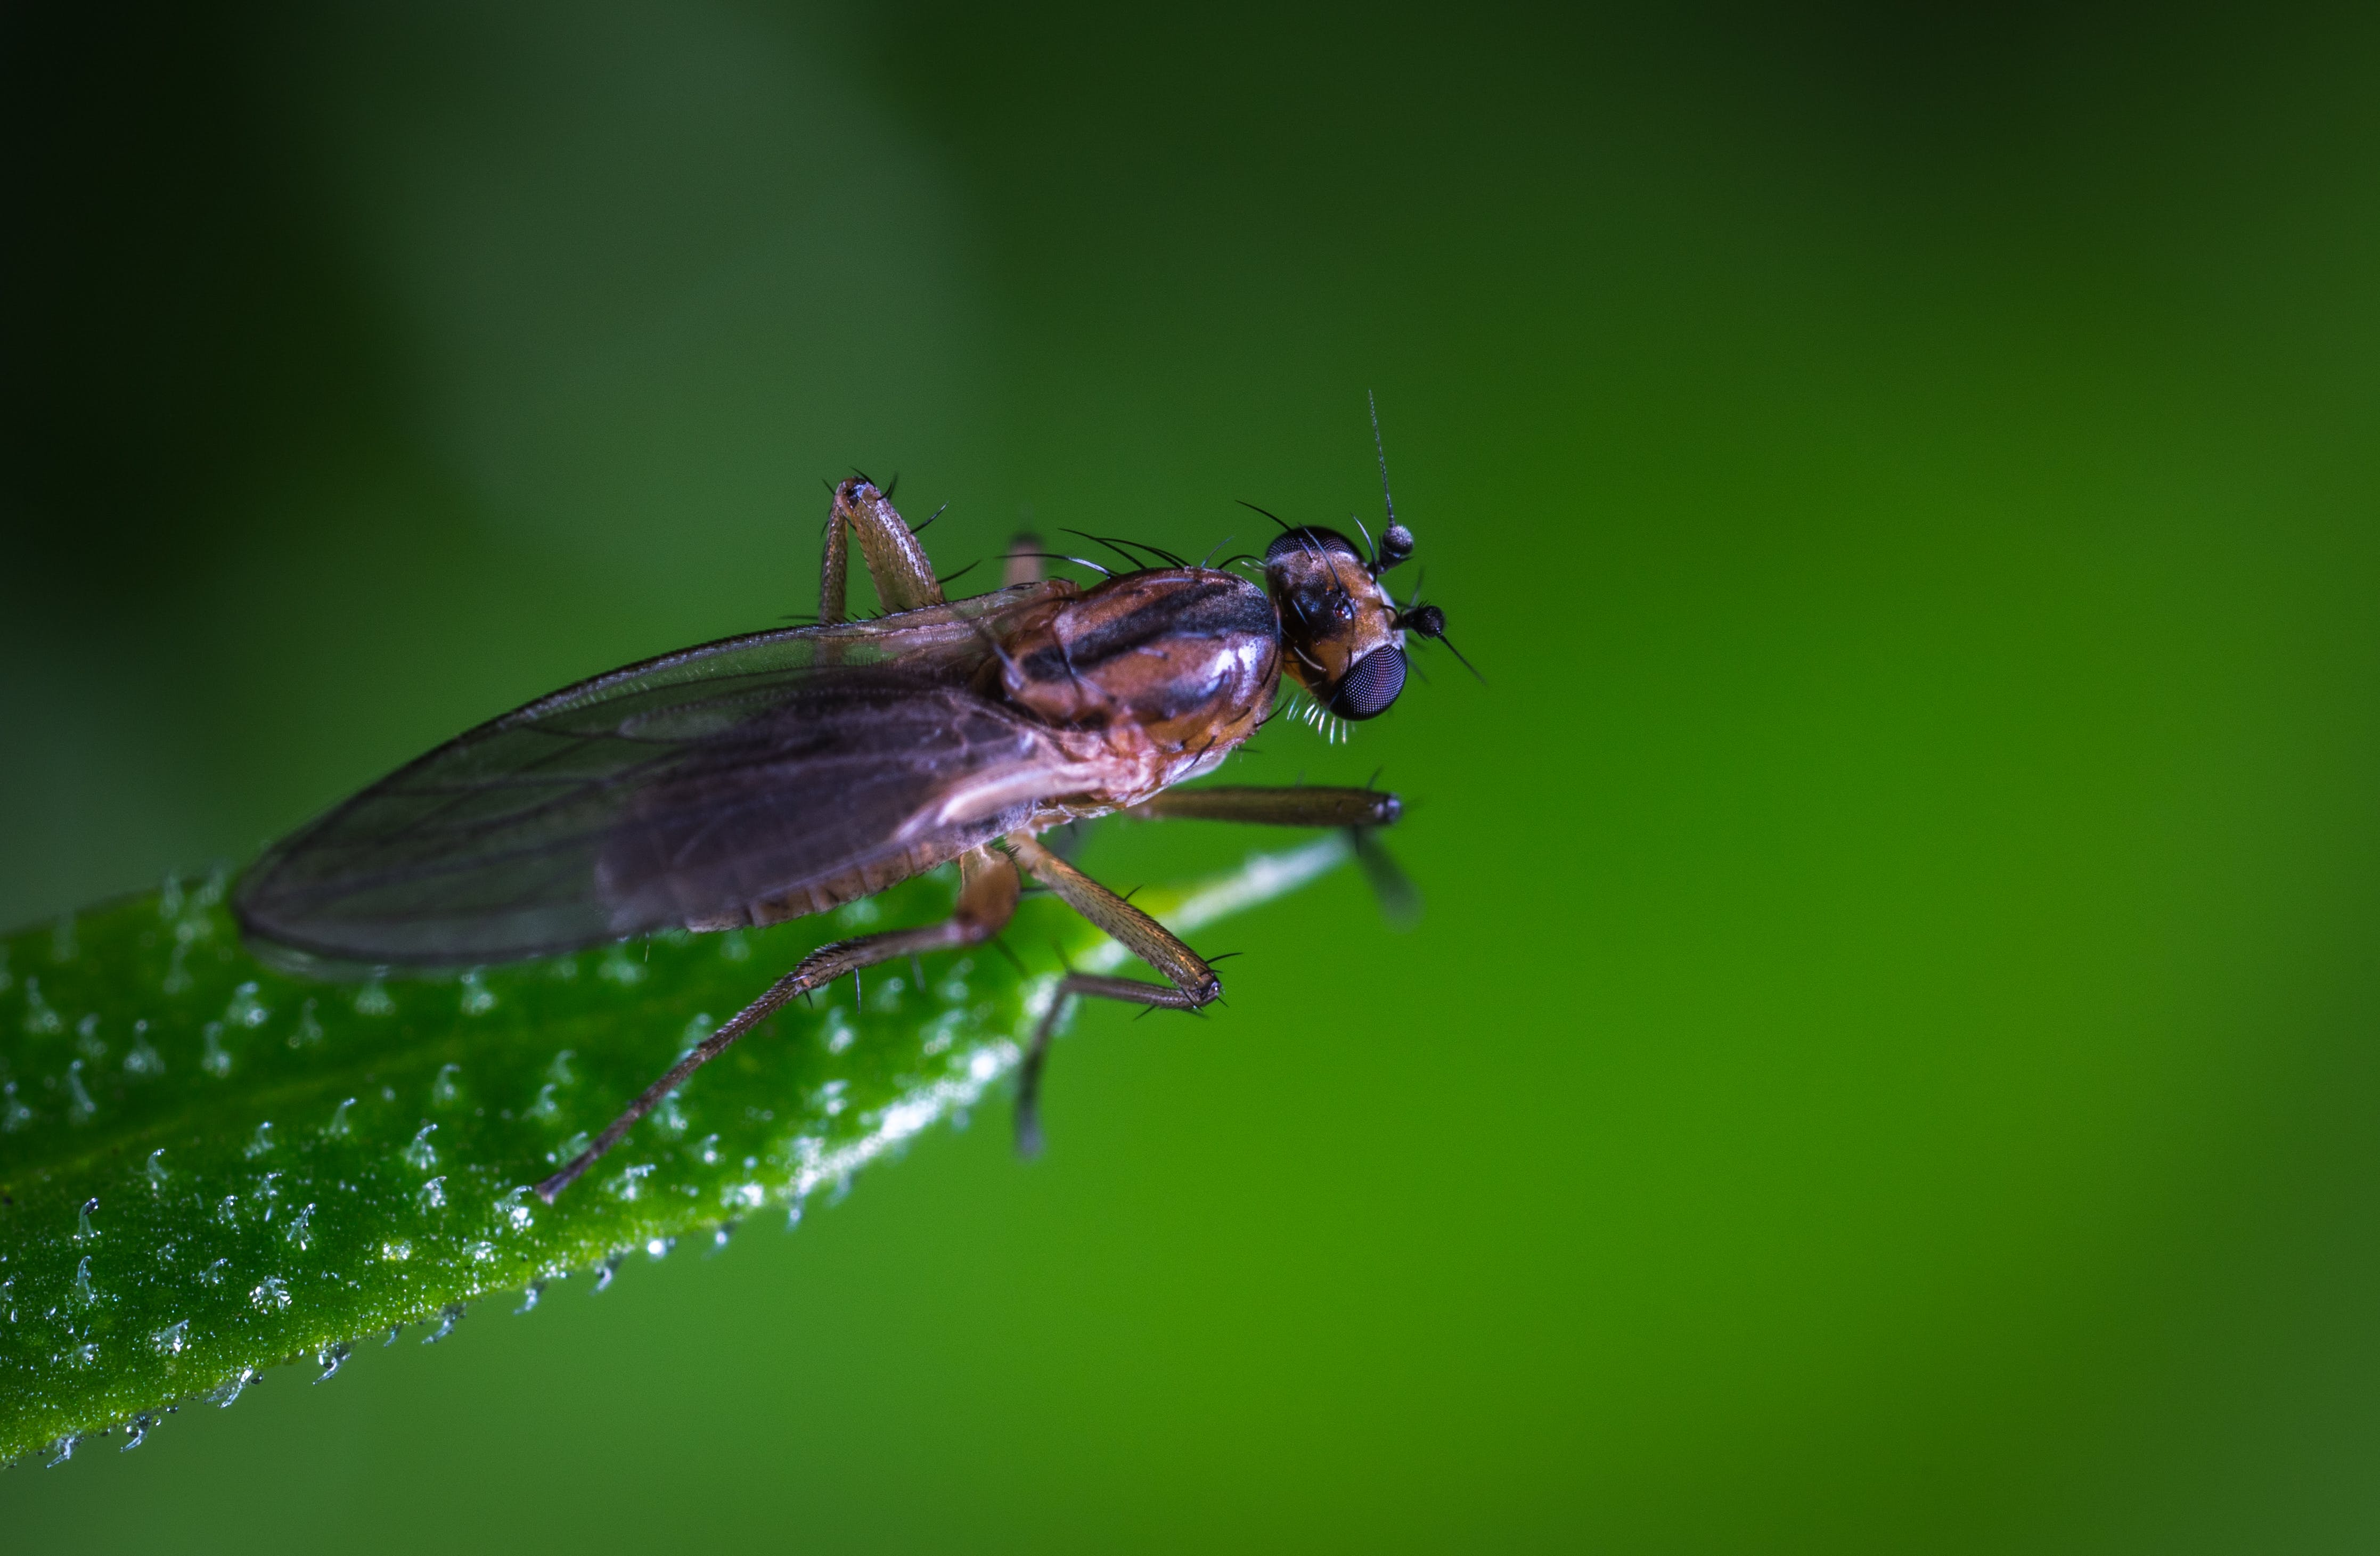 Macro Photo of a Brown and Black Fly on Green Leaf